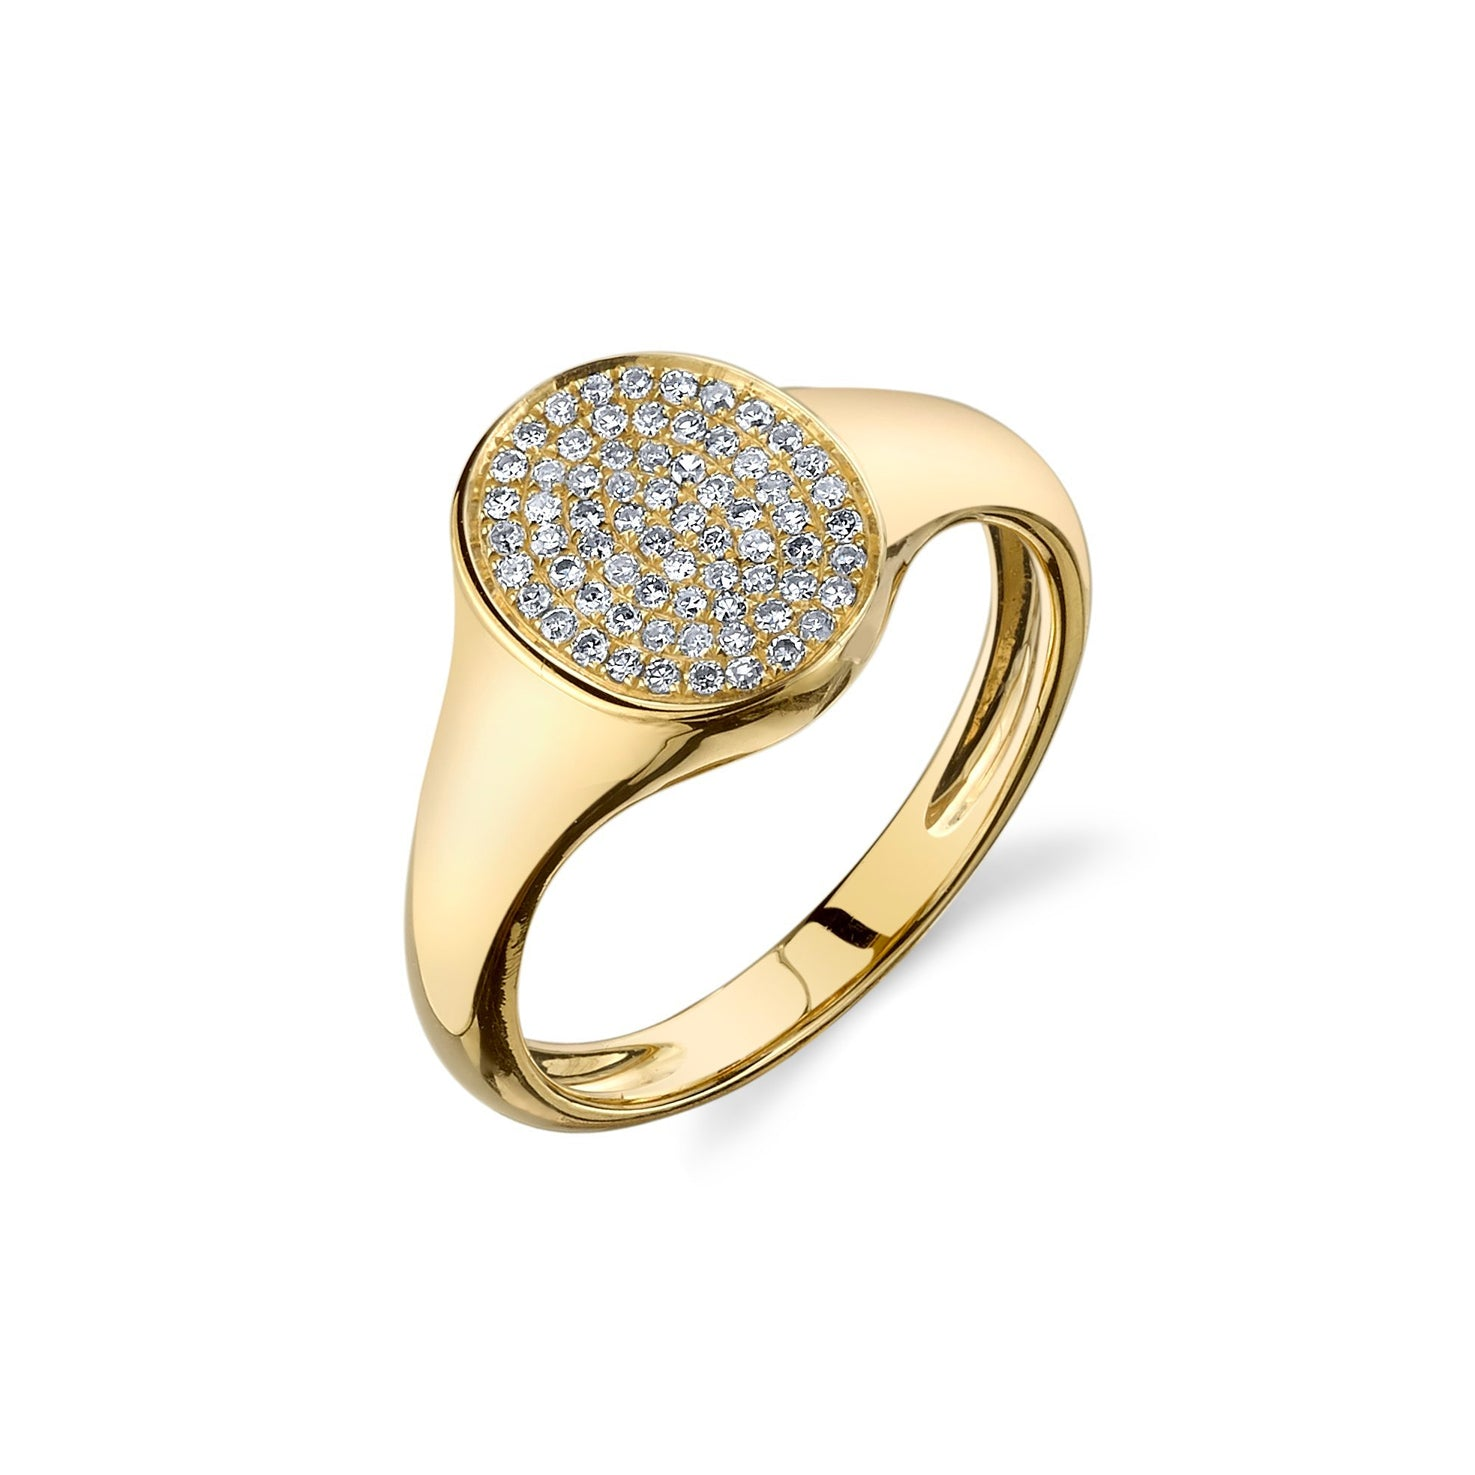 Disc Signet Ring With White Pavé